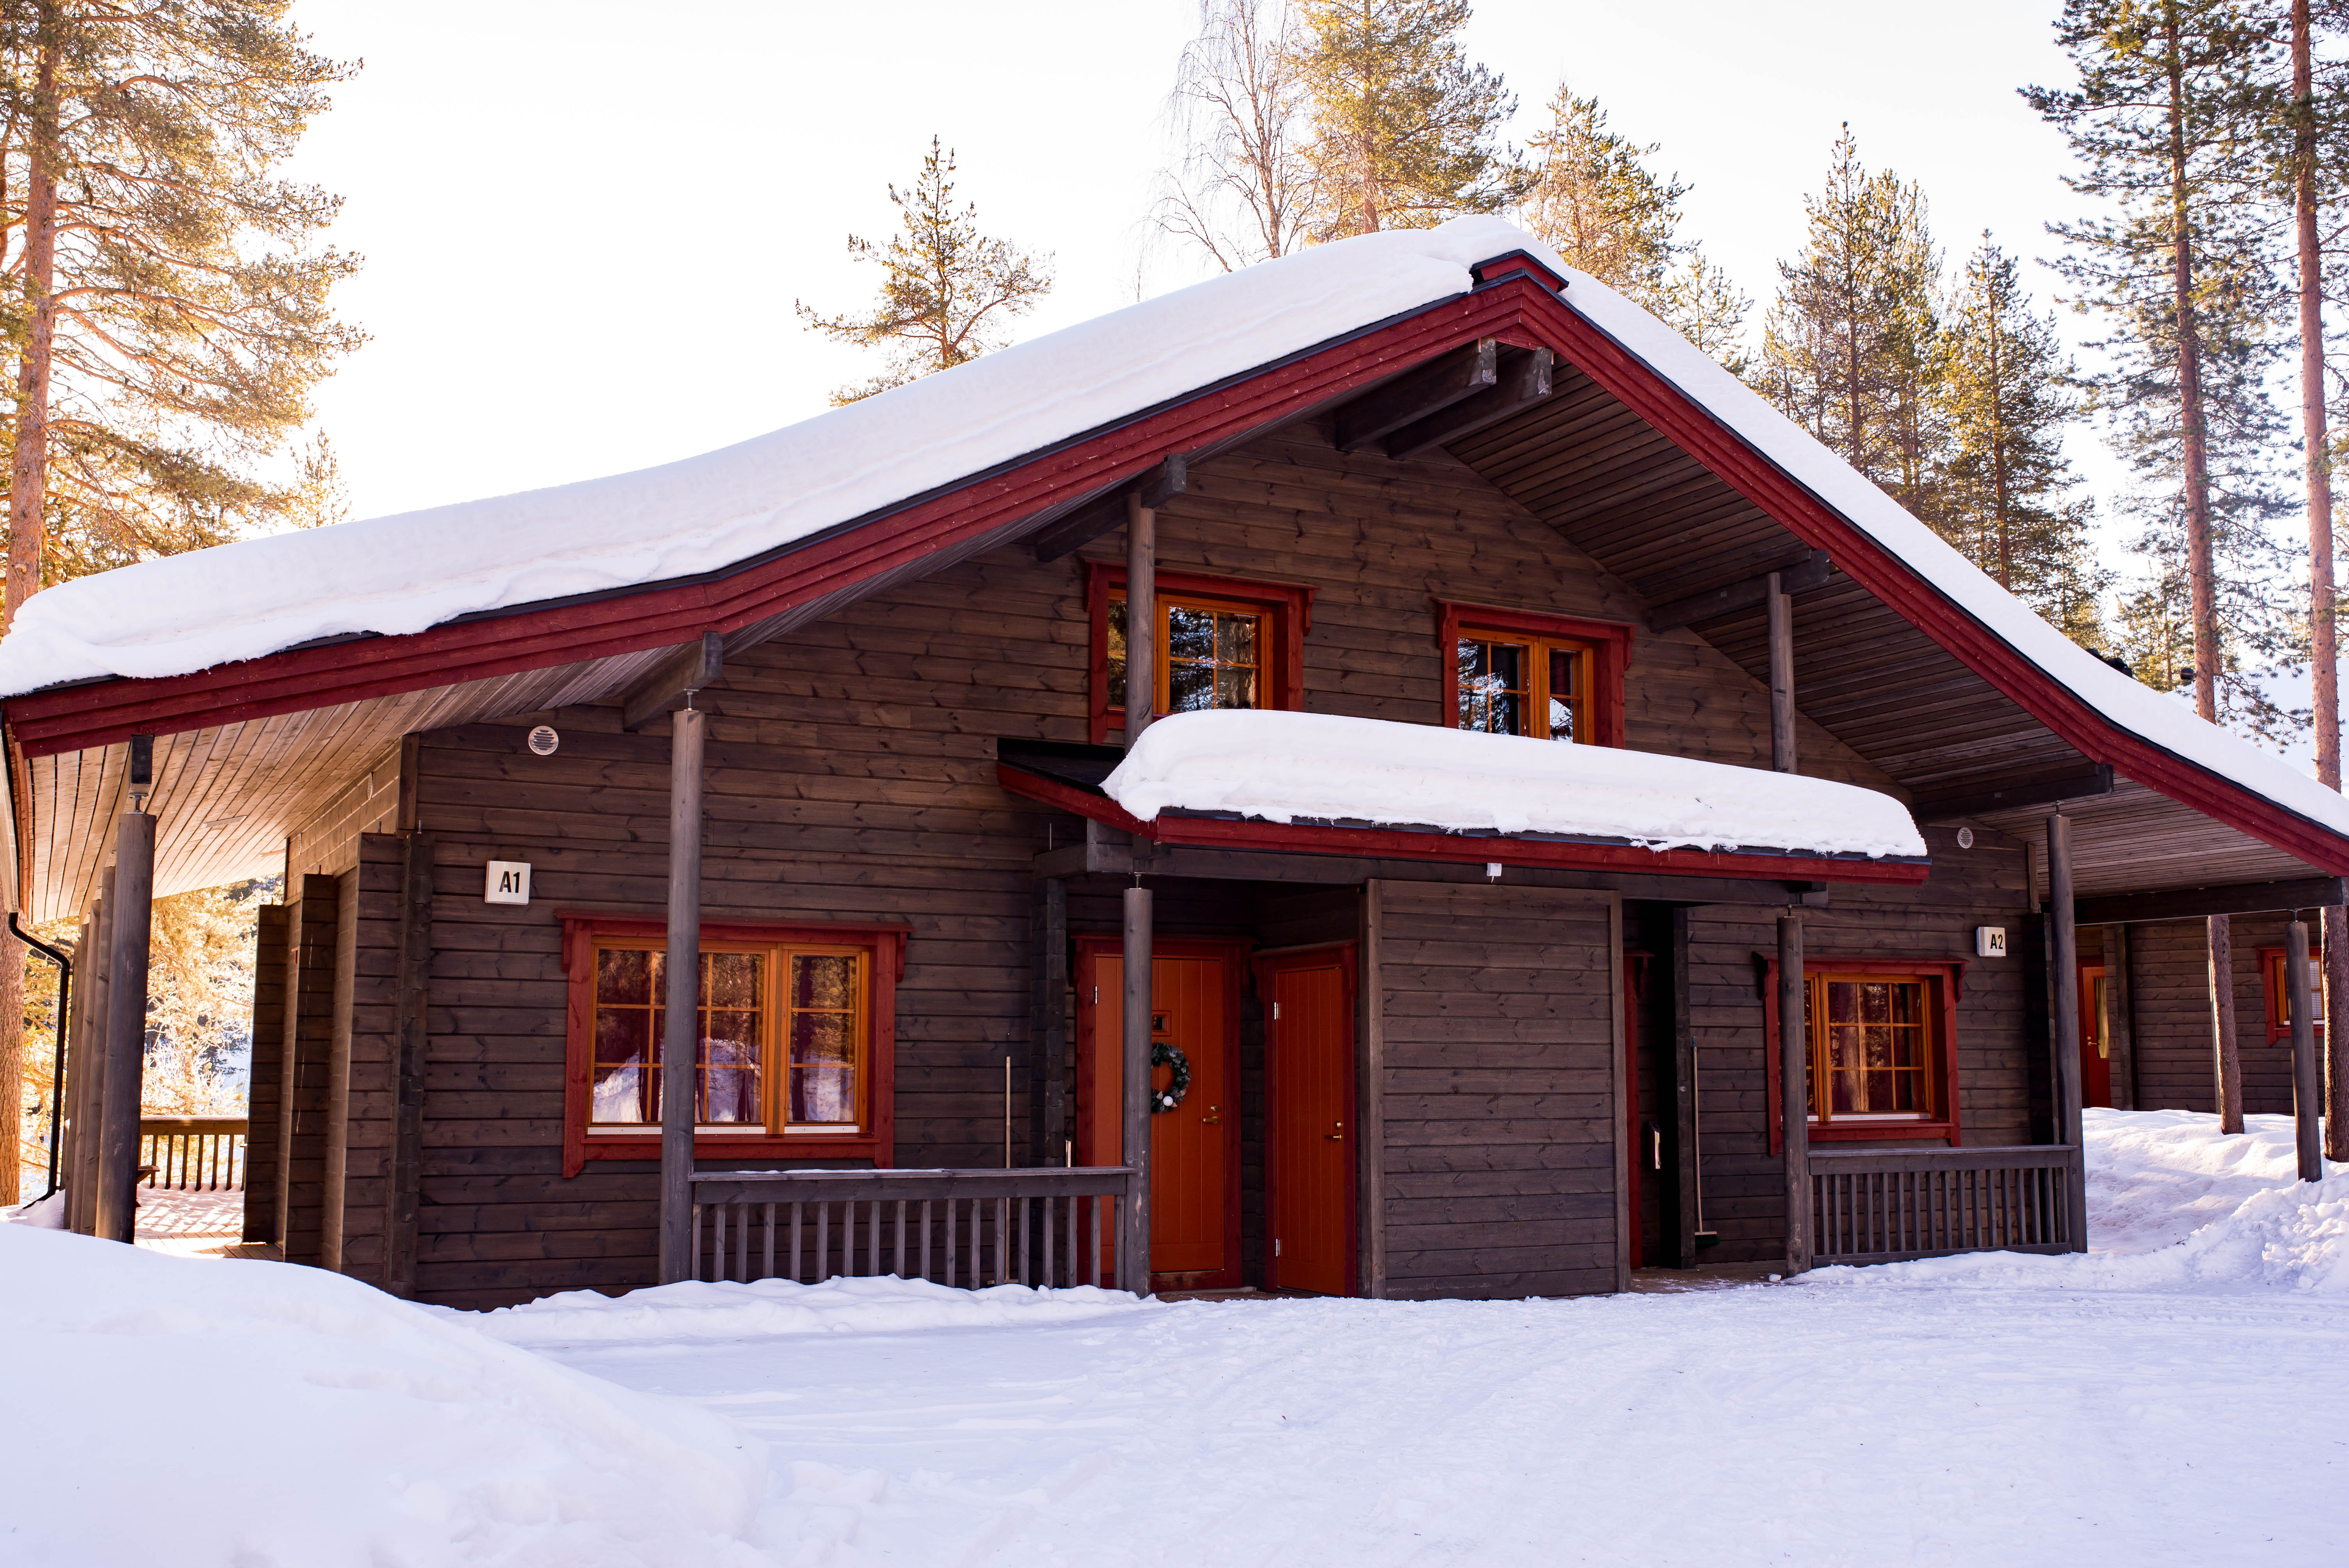 Lapland Hotel Bear's Lodge Finland